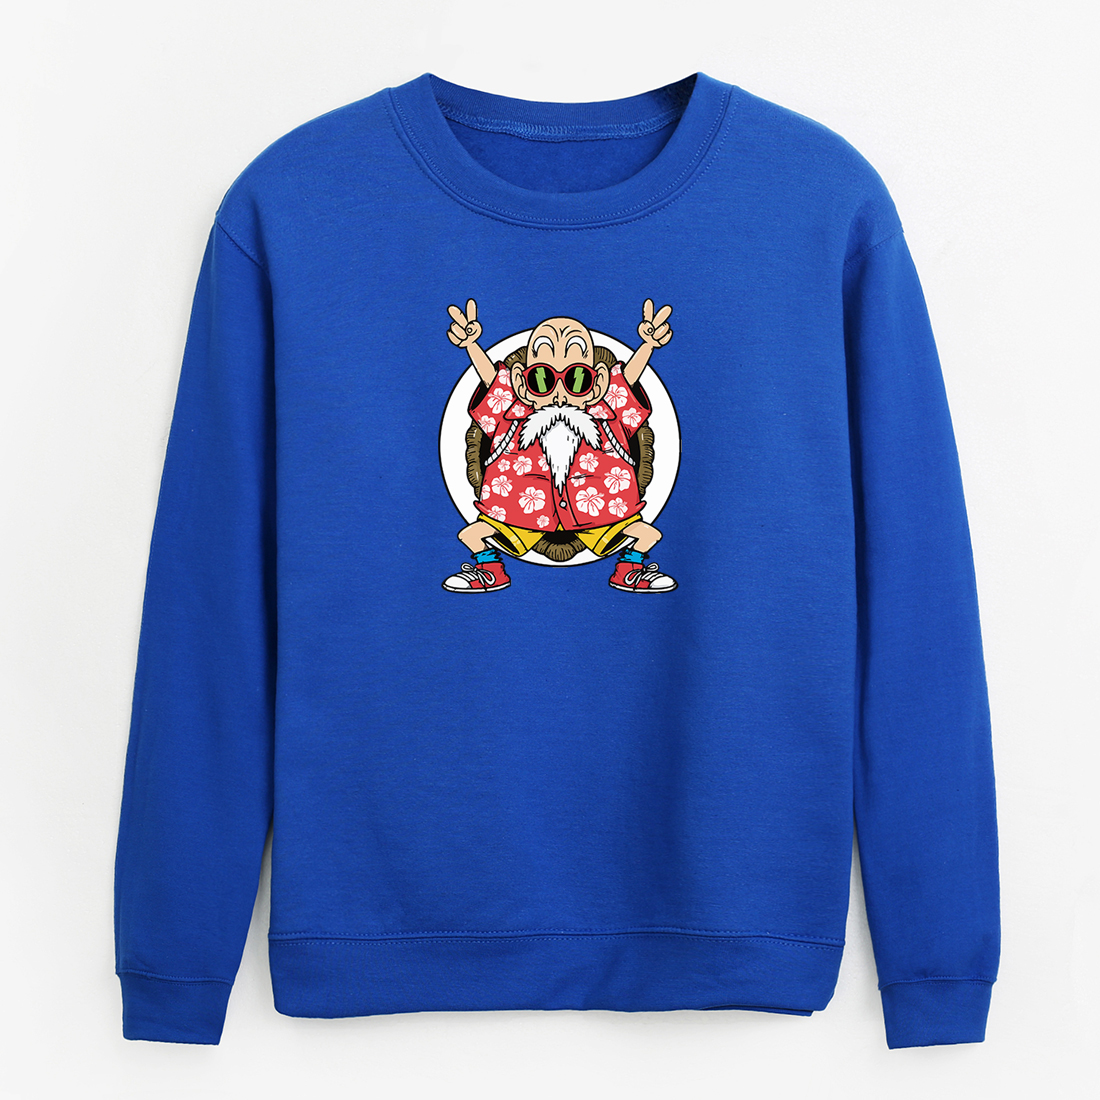 2019 Men 39 s pullover hoodie Dragon Ball Turtle fairy Print hoodies man 39 s Funny Anime Casual 100 Cotton motion hooded sweatshirt in Hoodies amp Sweatshirts from Men 39 s Clothing